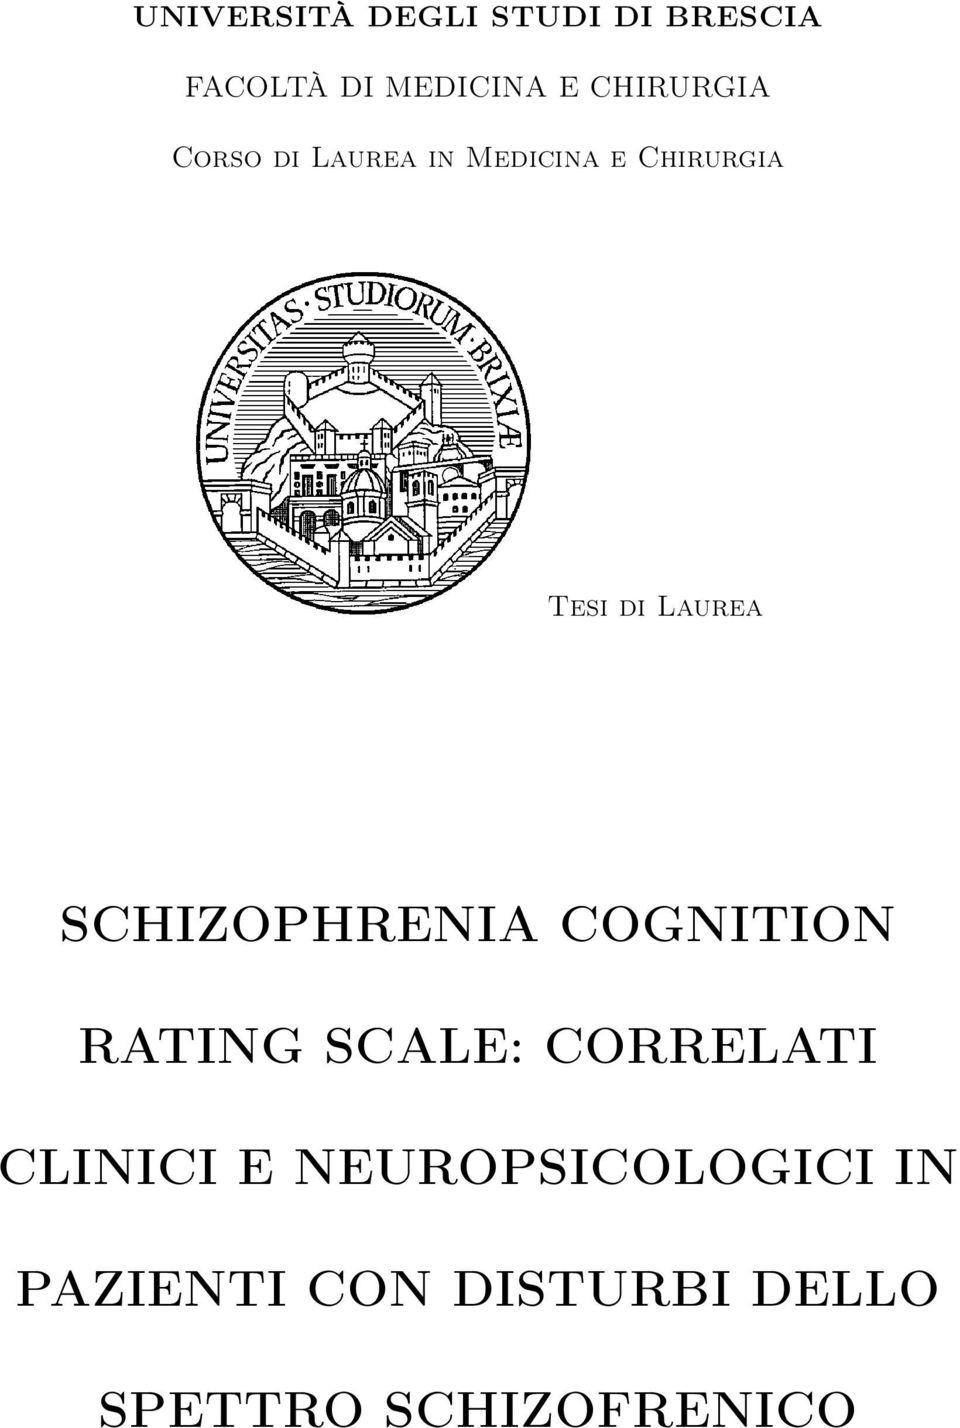 Laurea SCHIZOPHRENIA COGNITION RATING SCALE: CORRELATI